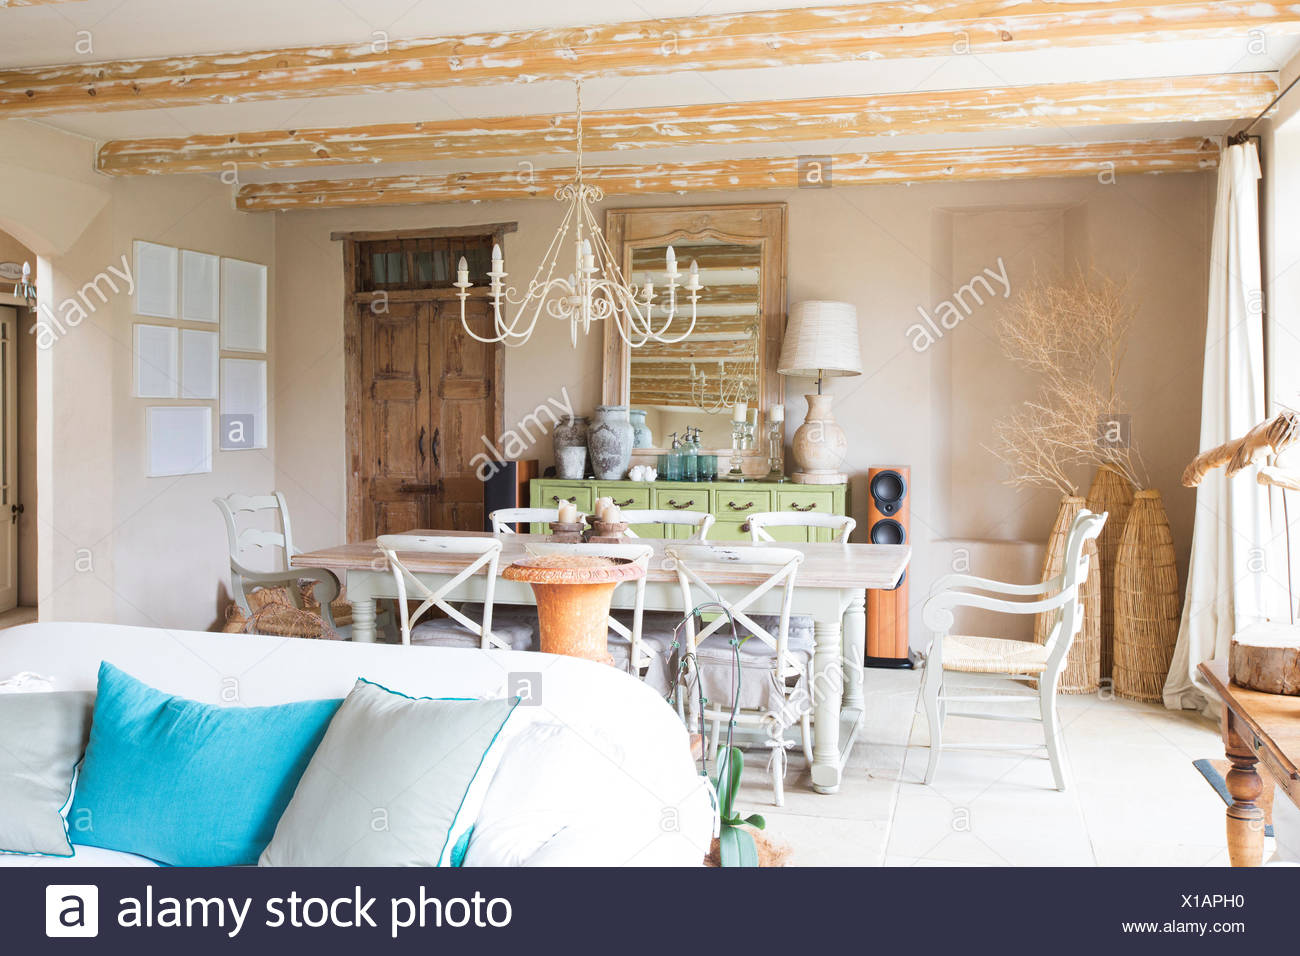 Living and dining area in rustic house - Stock Image